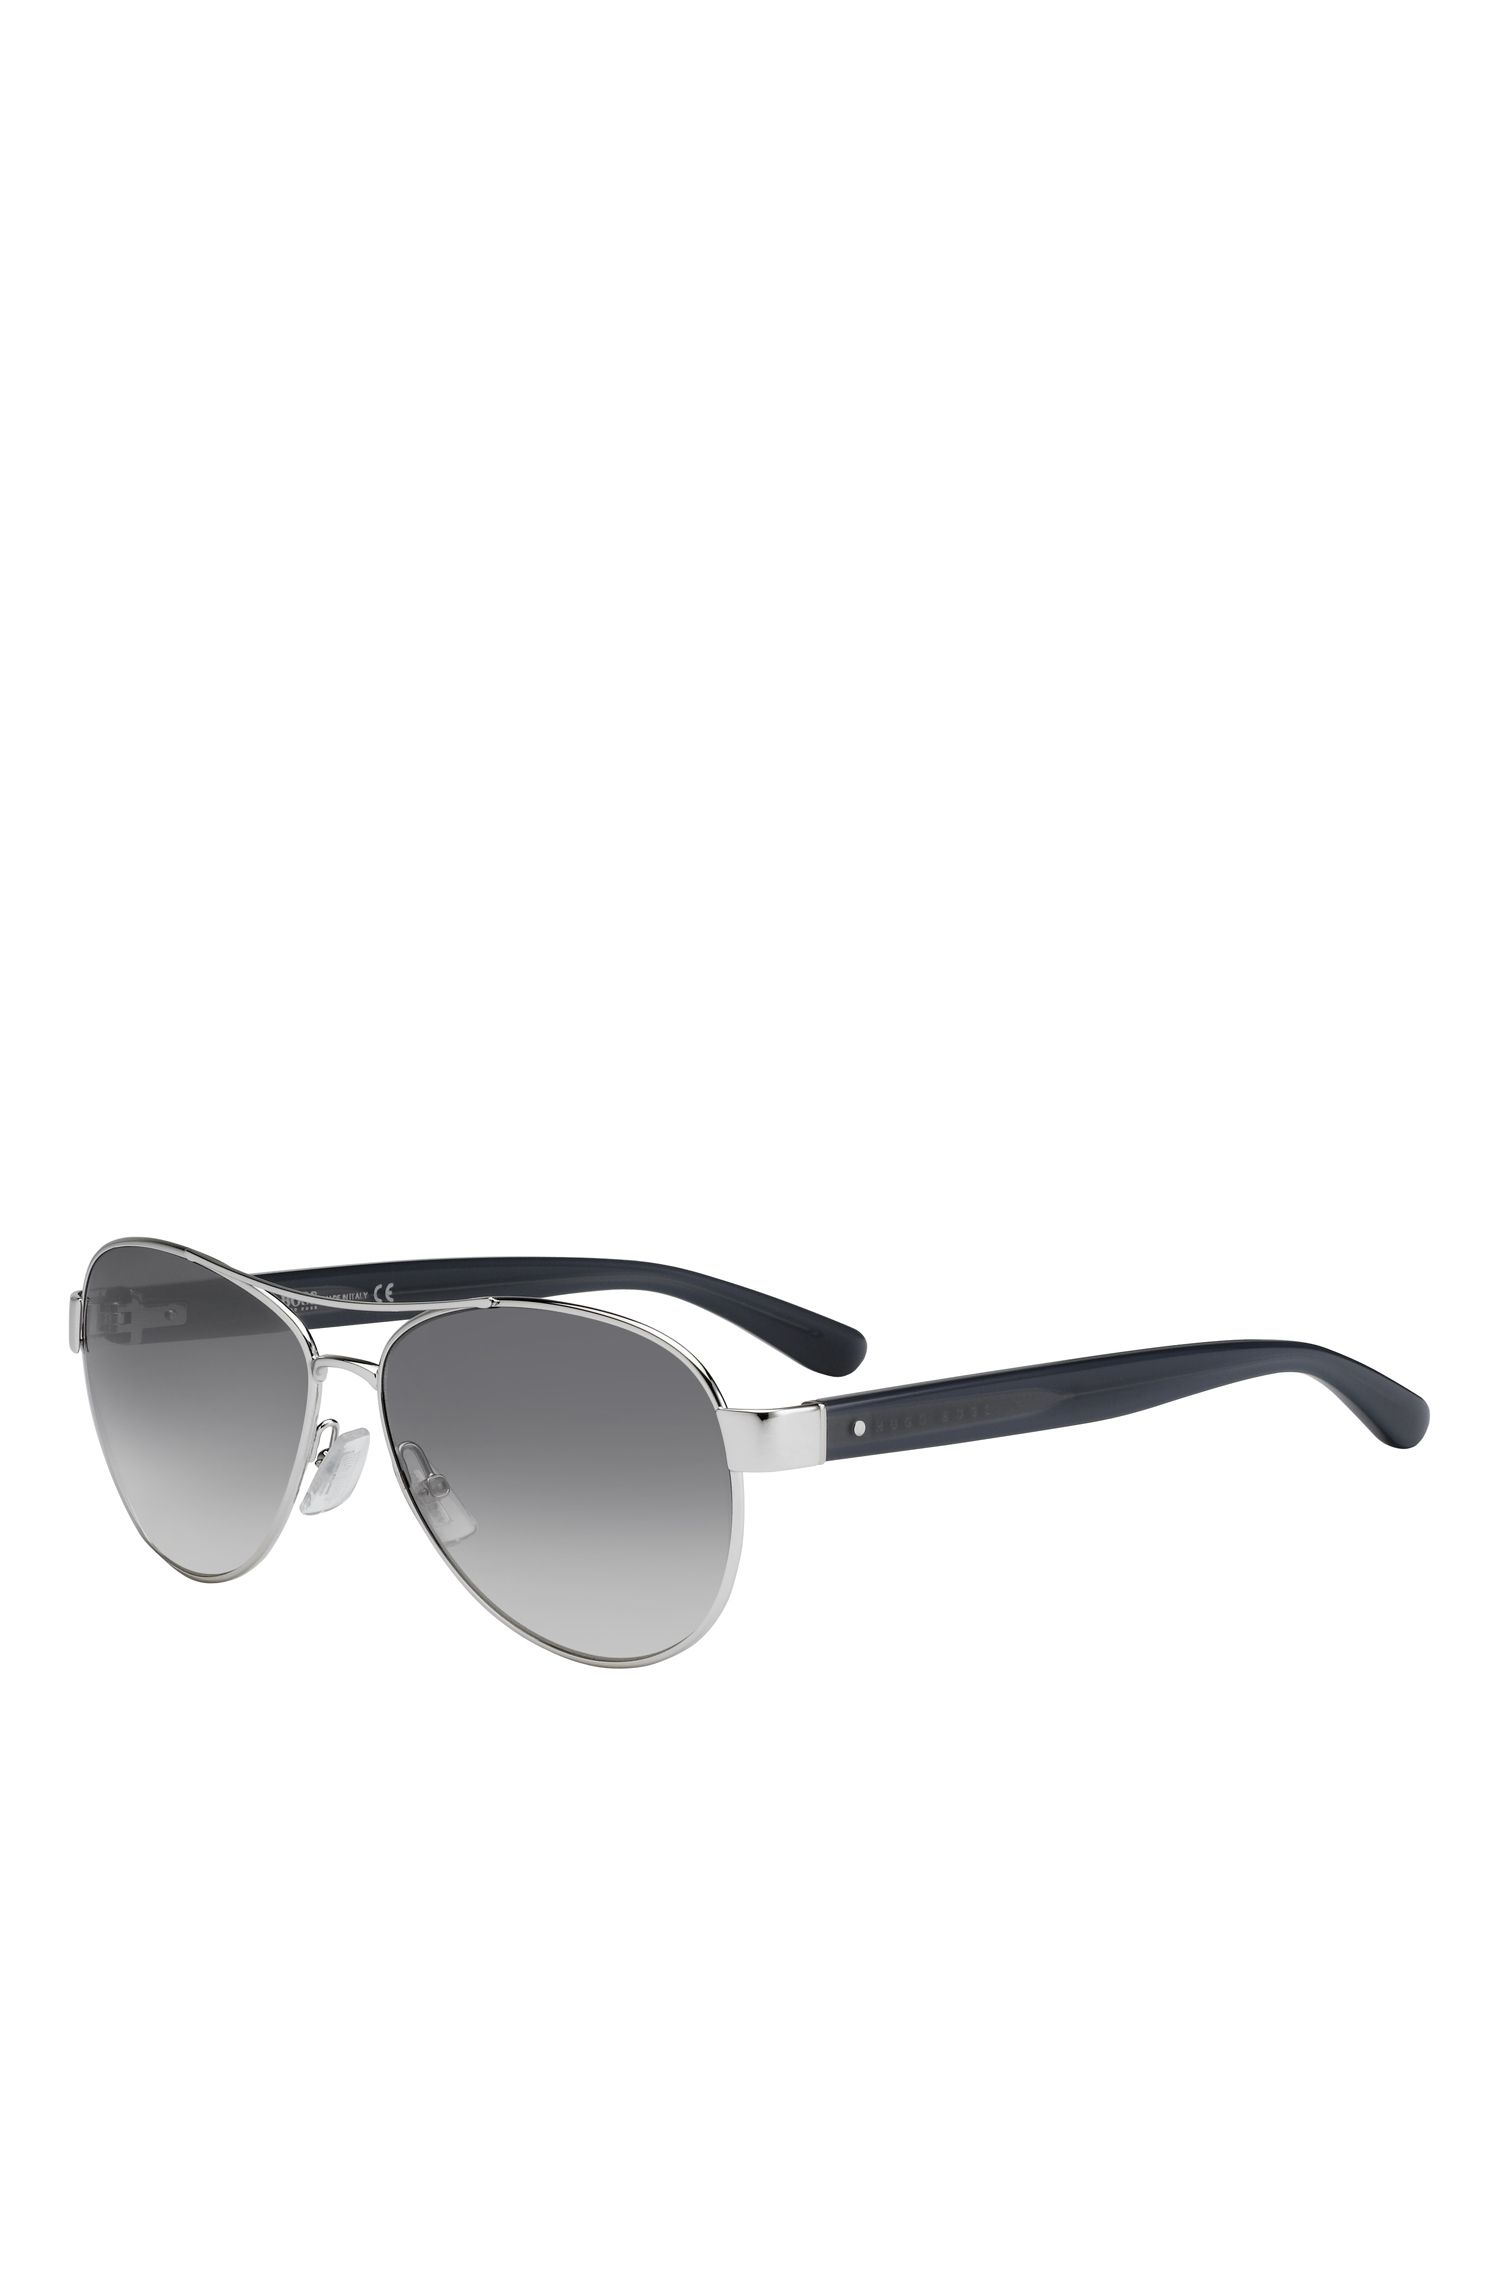 'BOSS 0788S' | Mirror Lens Aviator Sunglasses